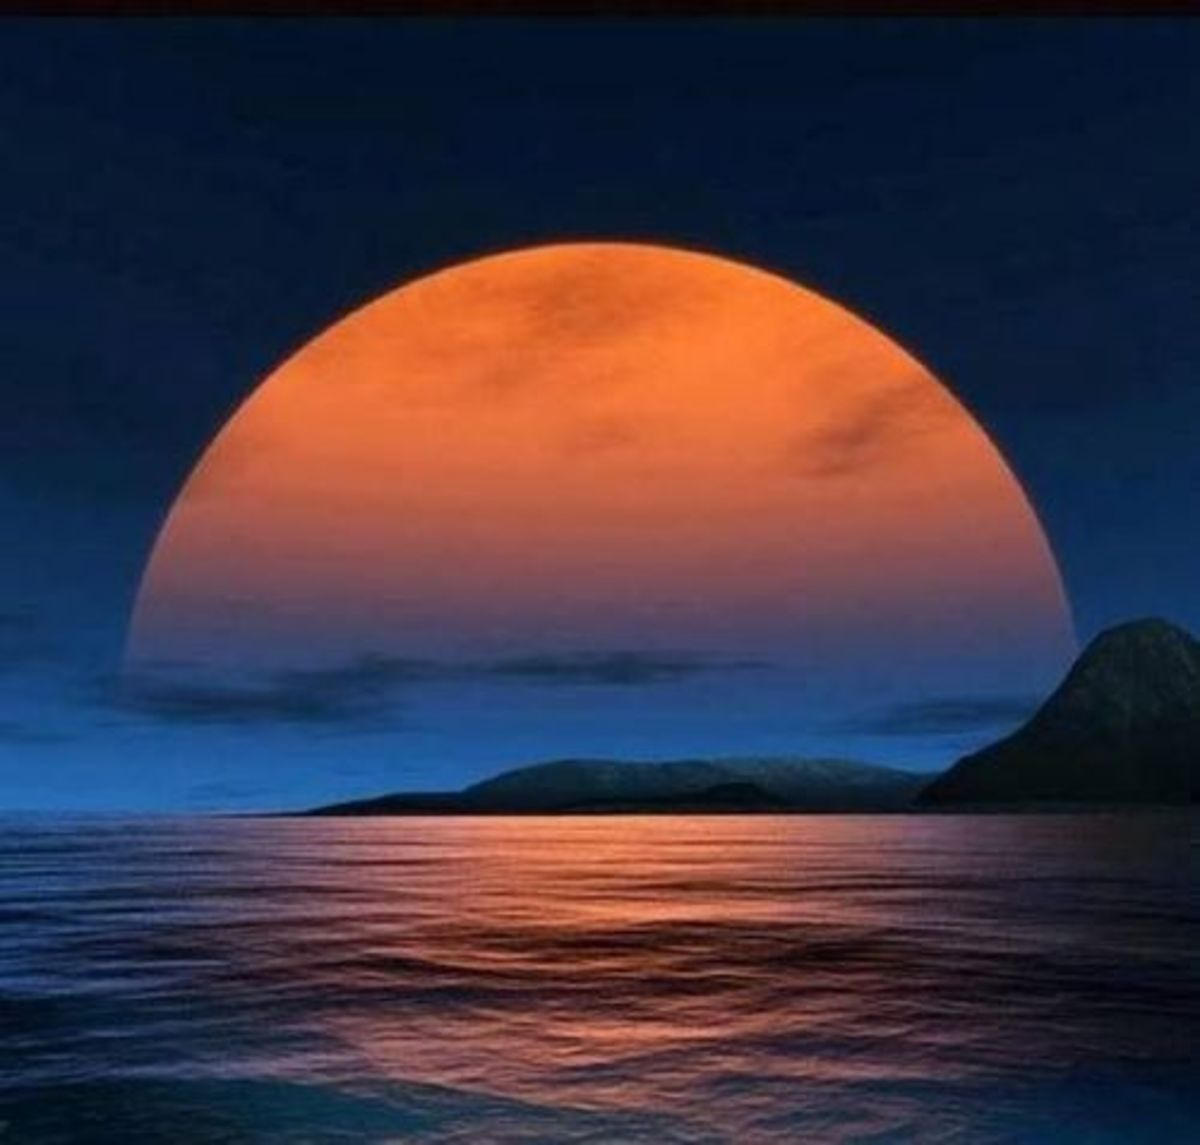 Sometime I look at the moon and think that its one of the most beautiful sights I've ever seen.